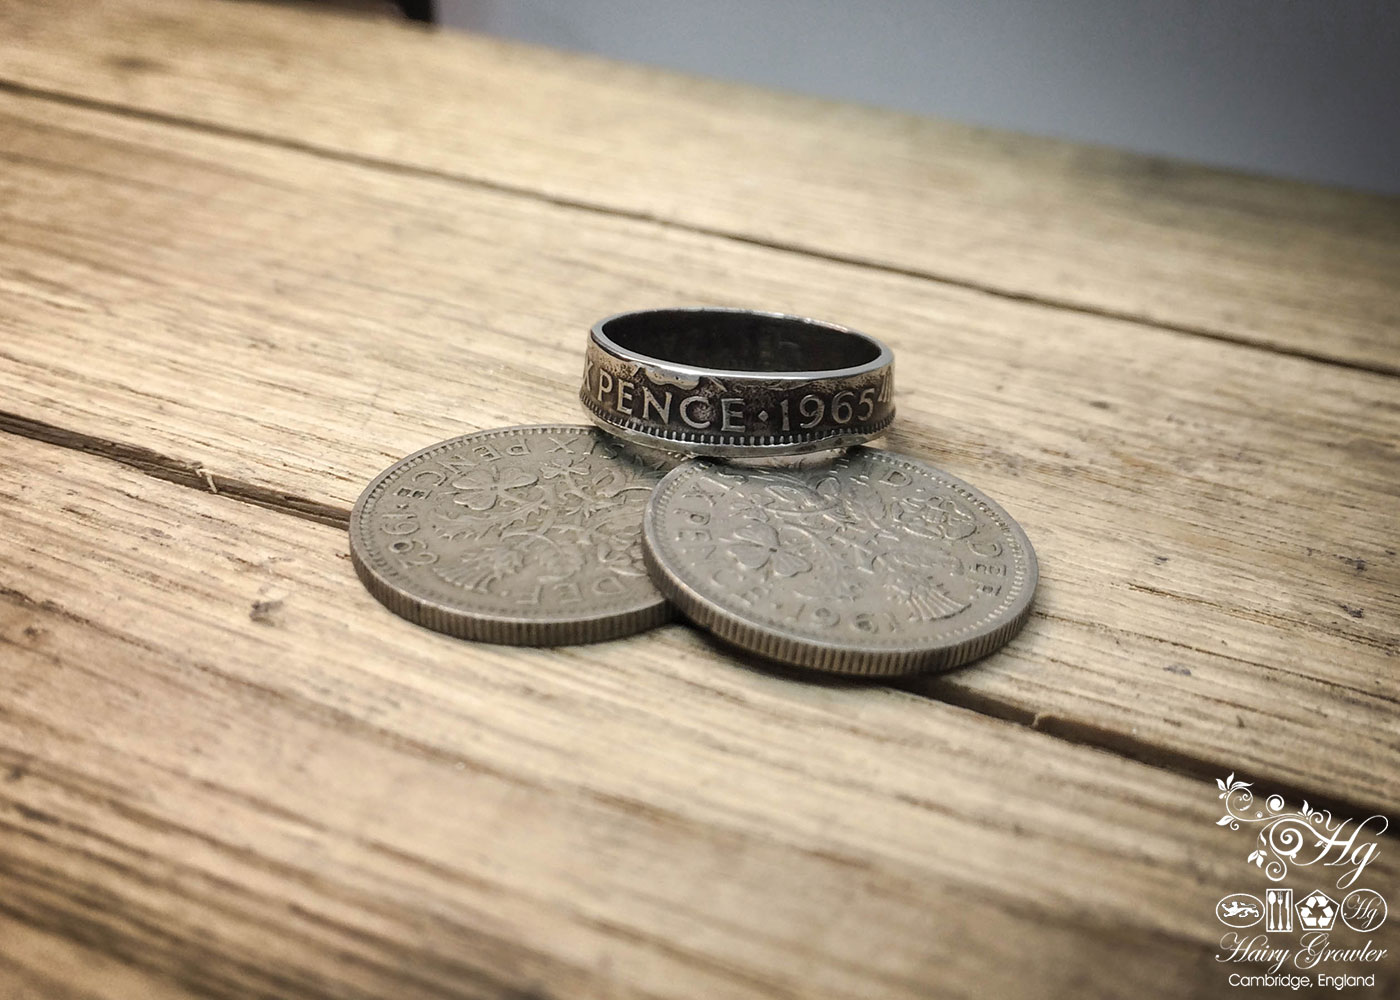 Handcrafted and recycled lucky sixpence coin ring